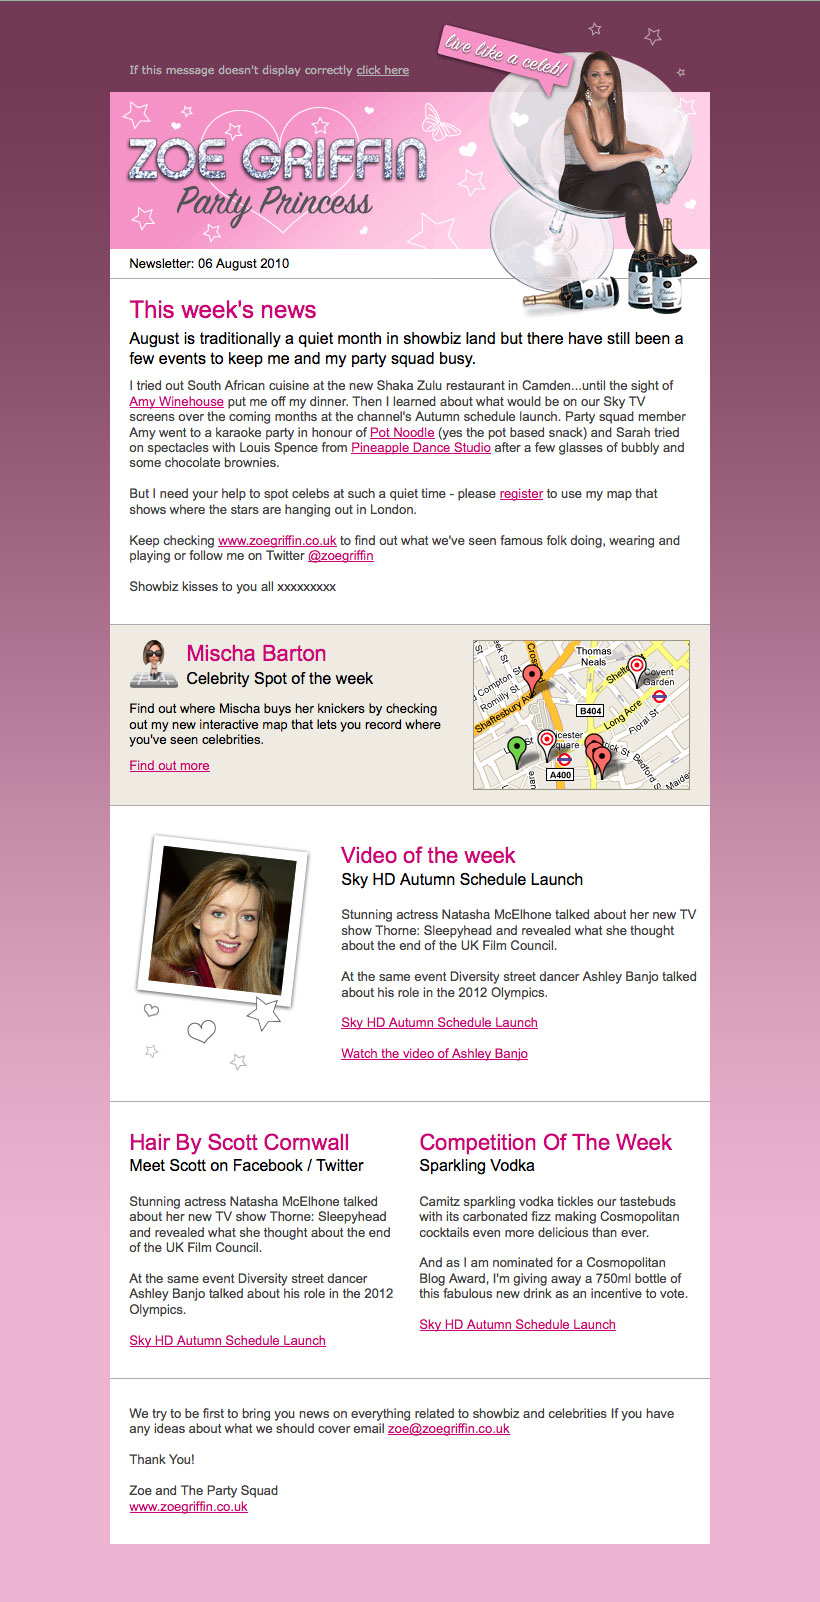 ipap celebrity spotting website zoe griffin email